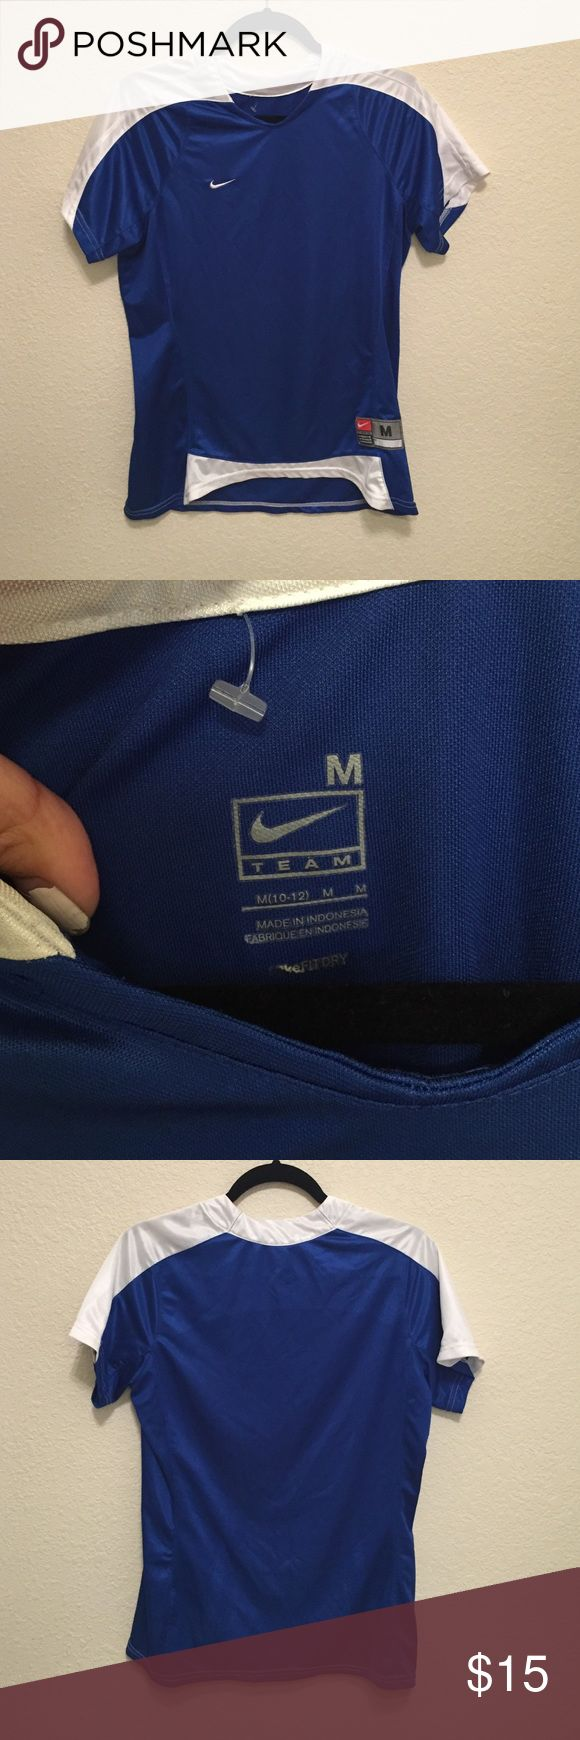 Blue and White Nike Shirt Labeled as Men's (10-12) Nike Workout shirt. Super comfy! Should fit a Women's S/M Nike Tops Tees - Short Sleeve